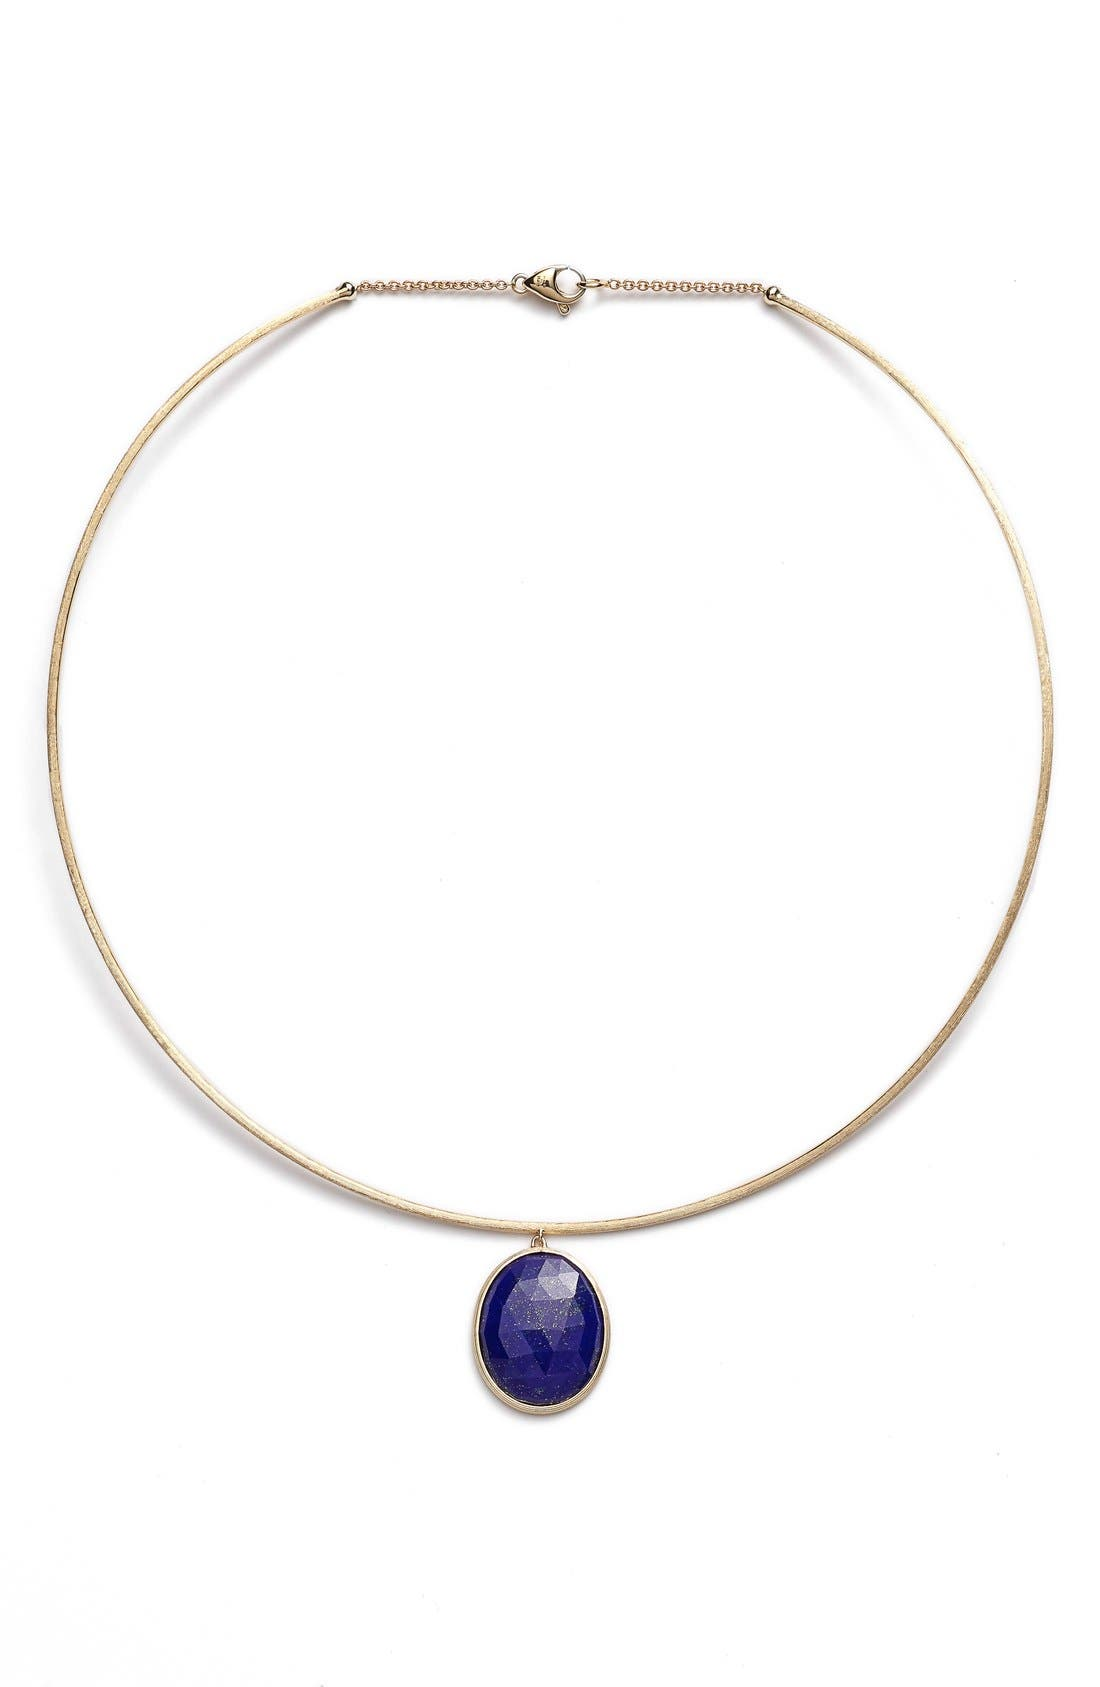 MARCO BICEGO 'Lunaria' Lapis Collar Necklace